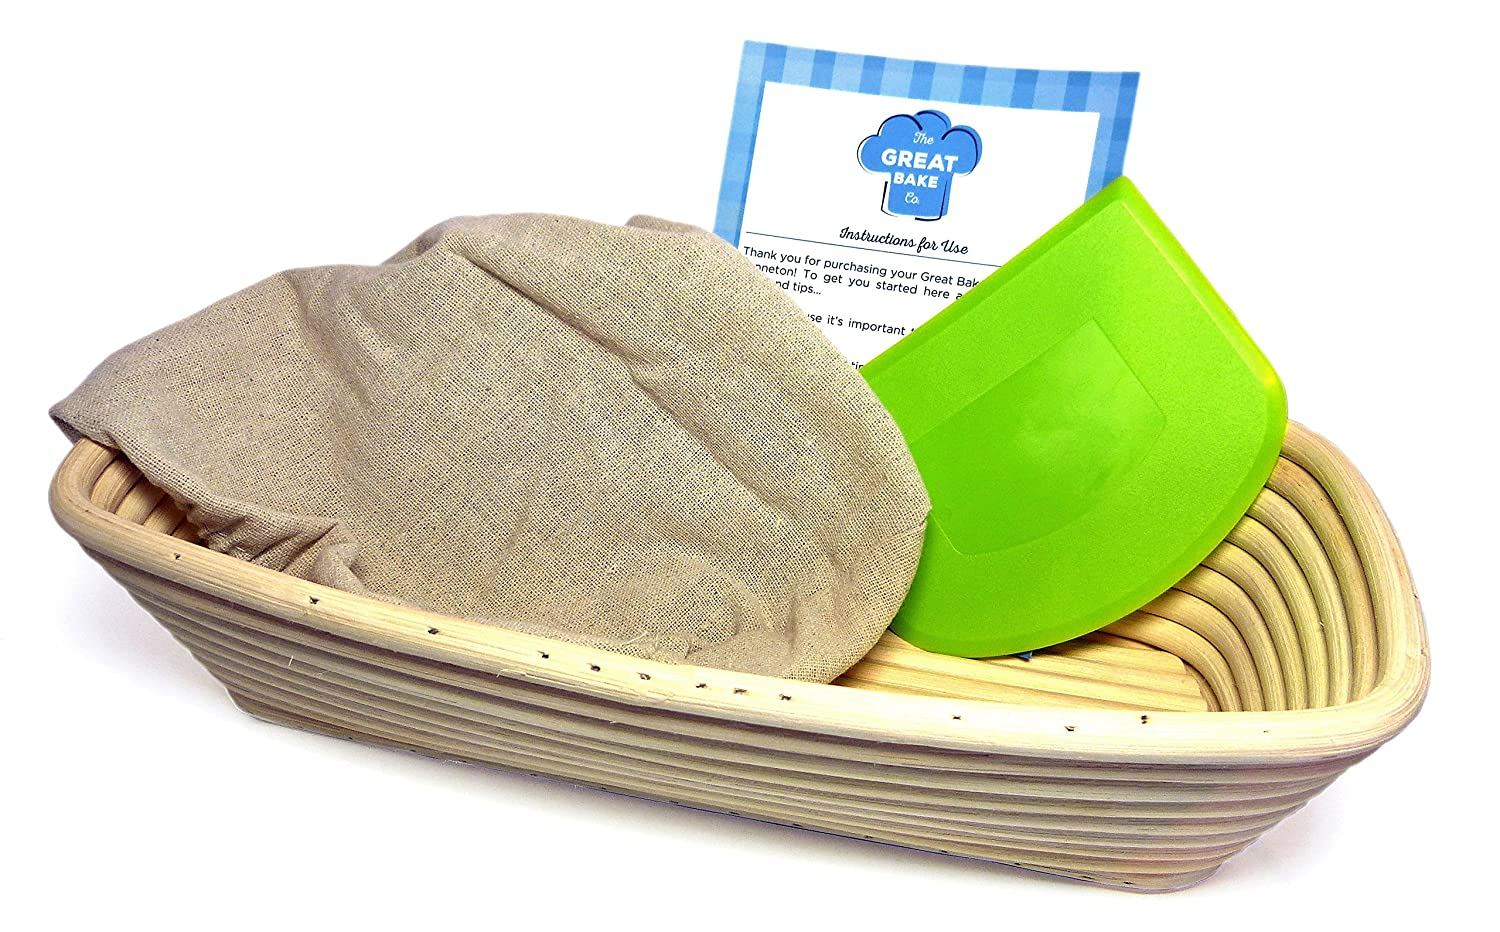 Banneton Proofing Basket Set (4 pieces) - Premium 8.5 Inch Round Bread Proofing Brotform, Dough Scraper, Linen Cloth Liner and Instructions by The Great Bake Co The Great Bake Co. COMIN18JU038899